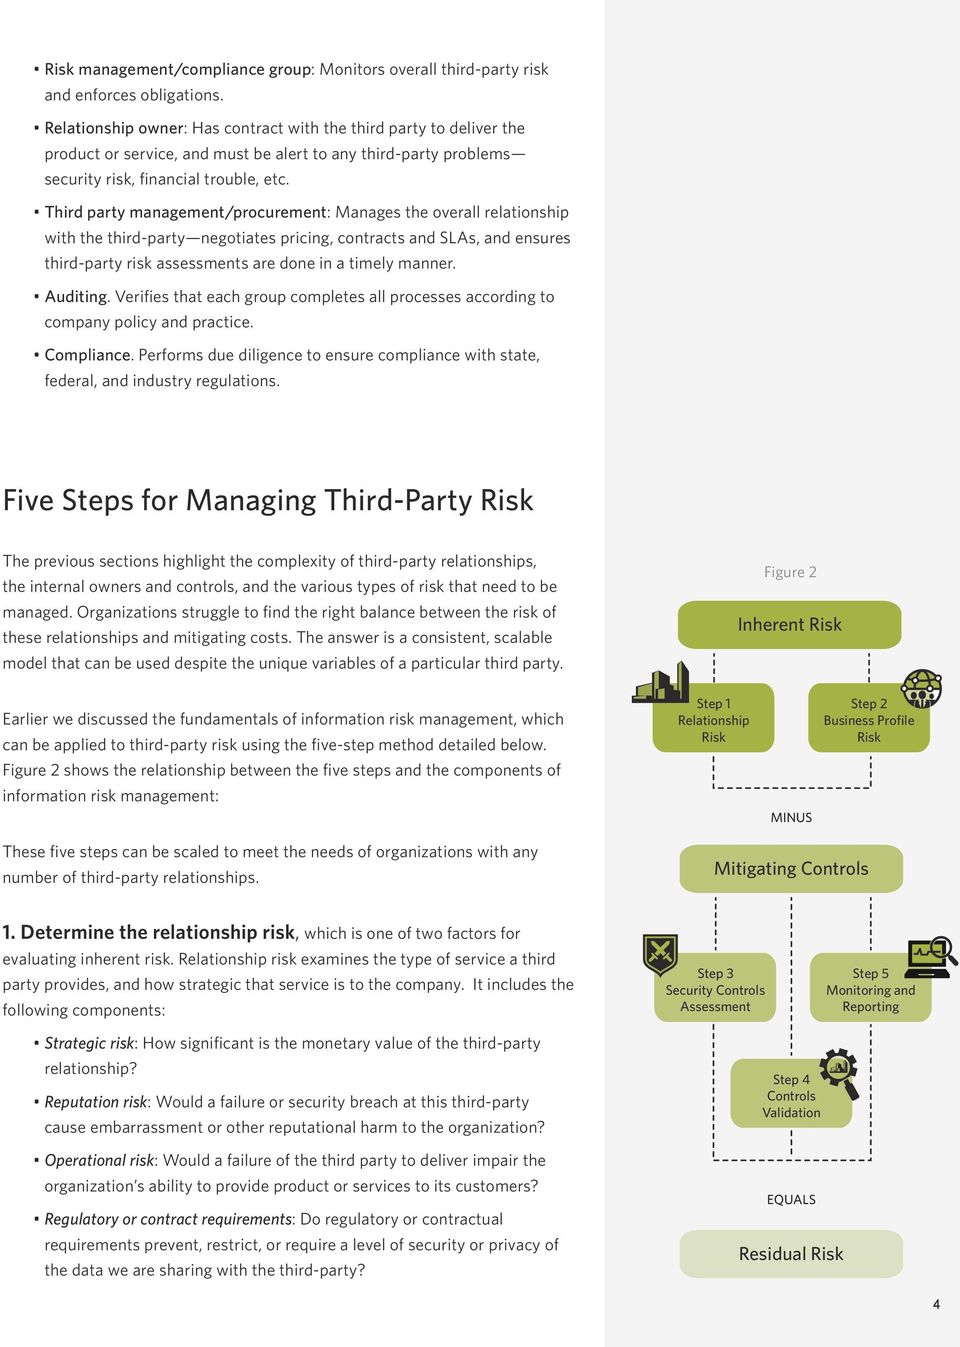 Third party management/procurement: Manages the overall relationship with the third-party negotiates pricing, contracts and SLAs, and ensures third-party risk assessments are done in a timely manner.